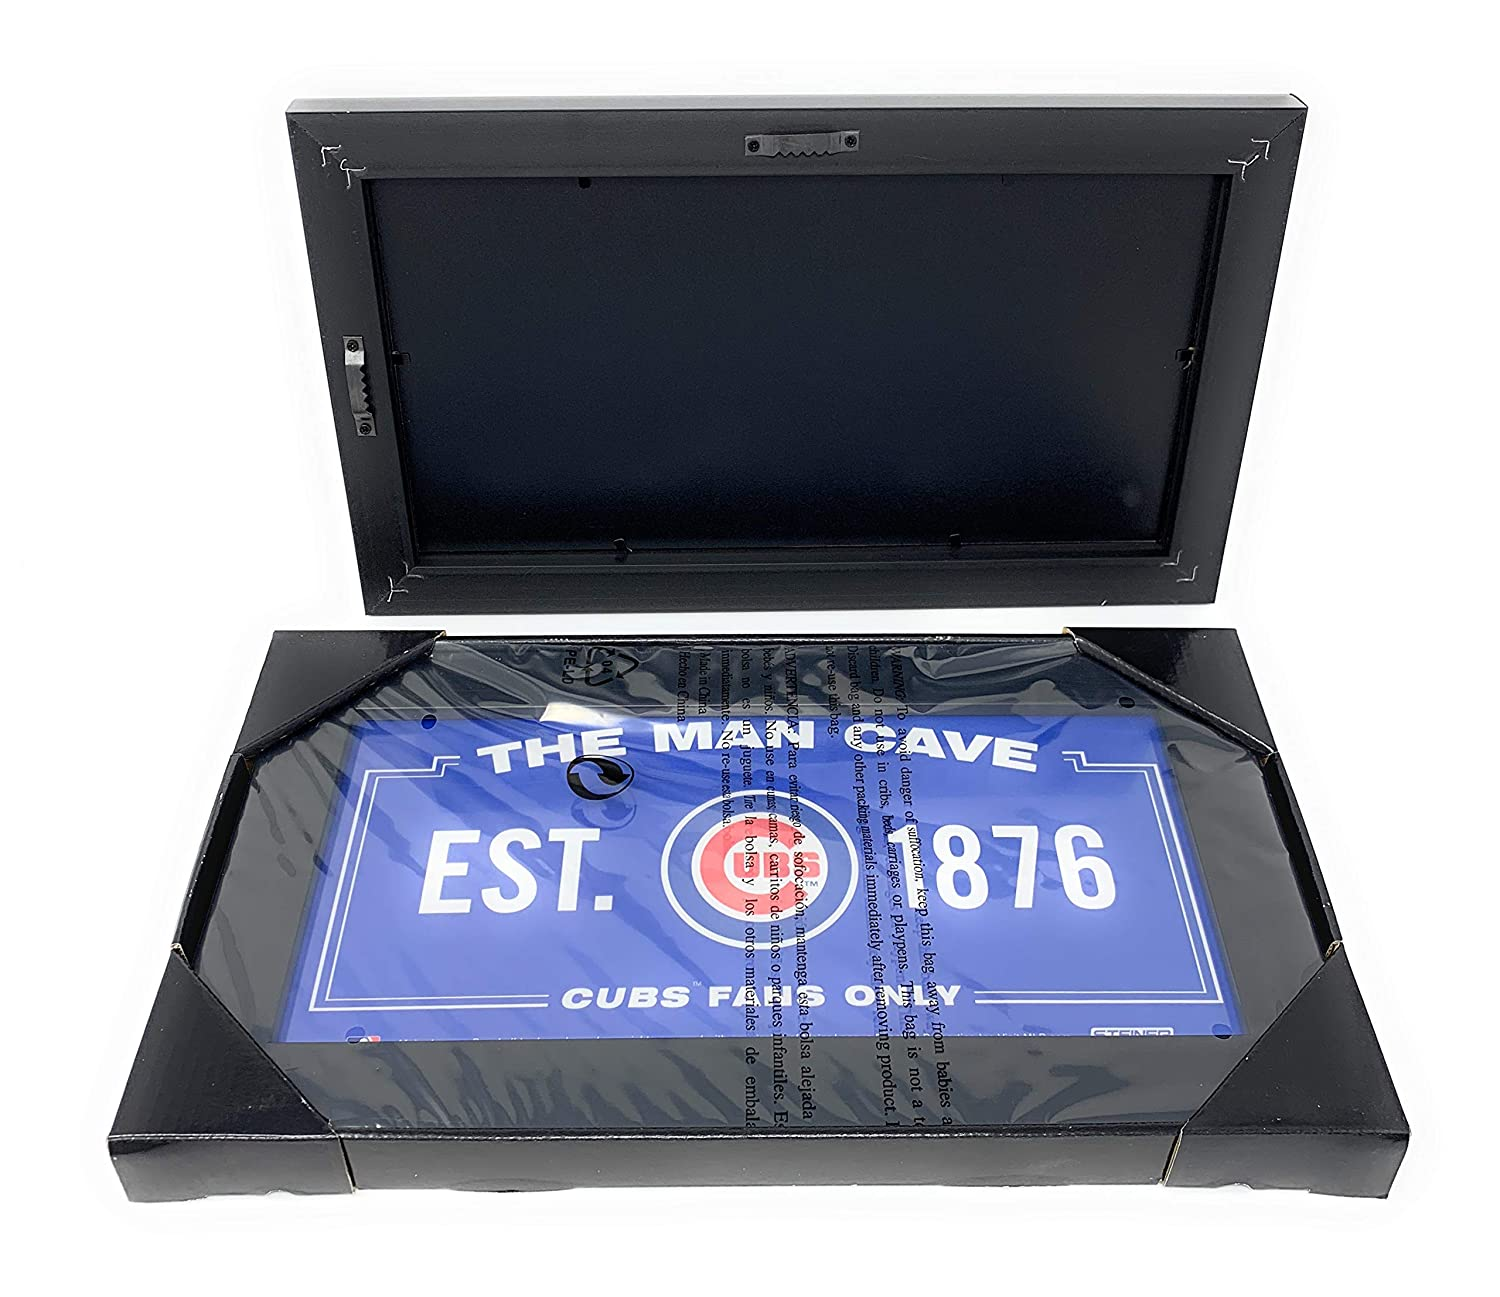 Amazon.com: Mister Mancave Chicago Cubs Man Cave MLB Licensed 6x12 Framed Photo Read to Hang: Sports & Outdoors